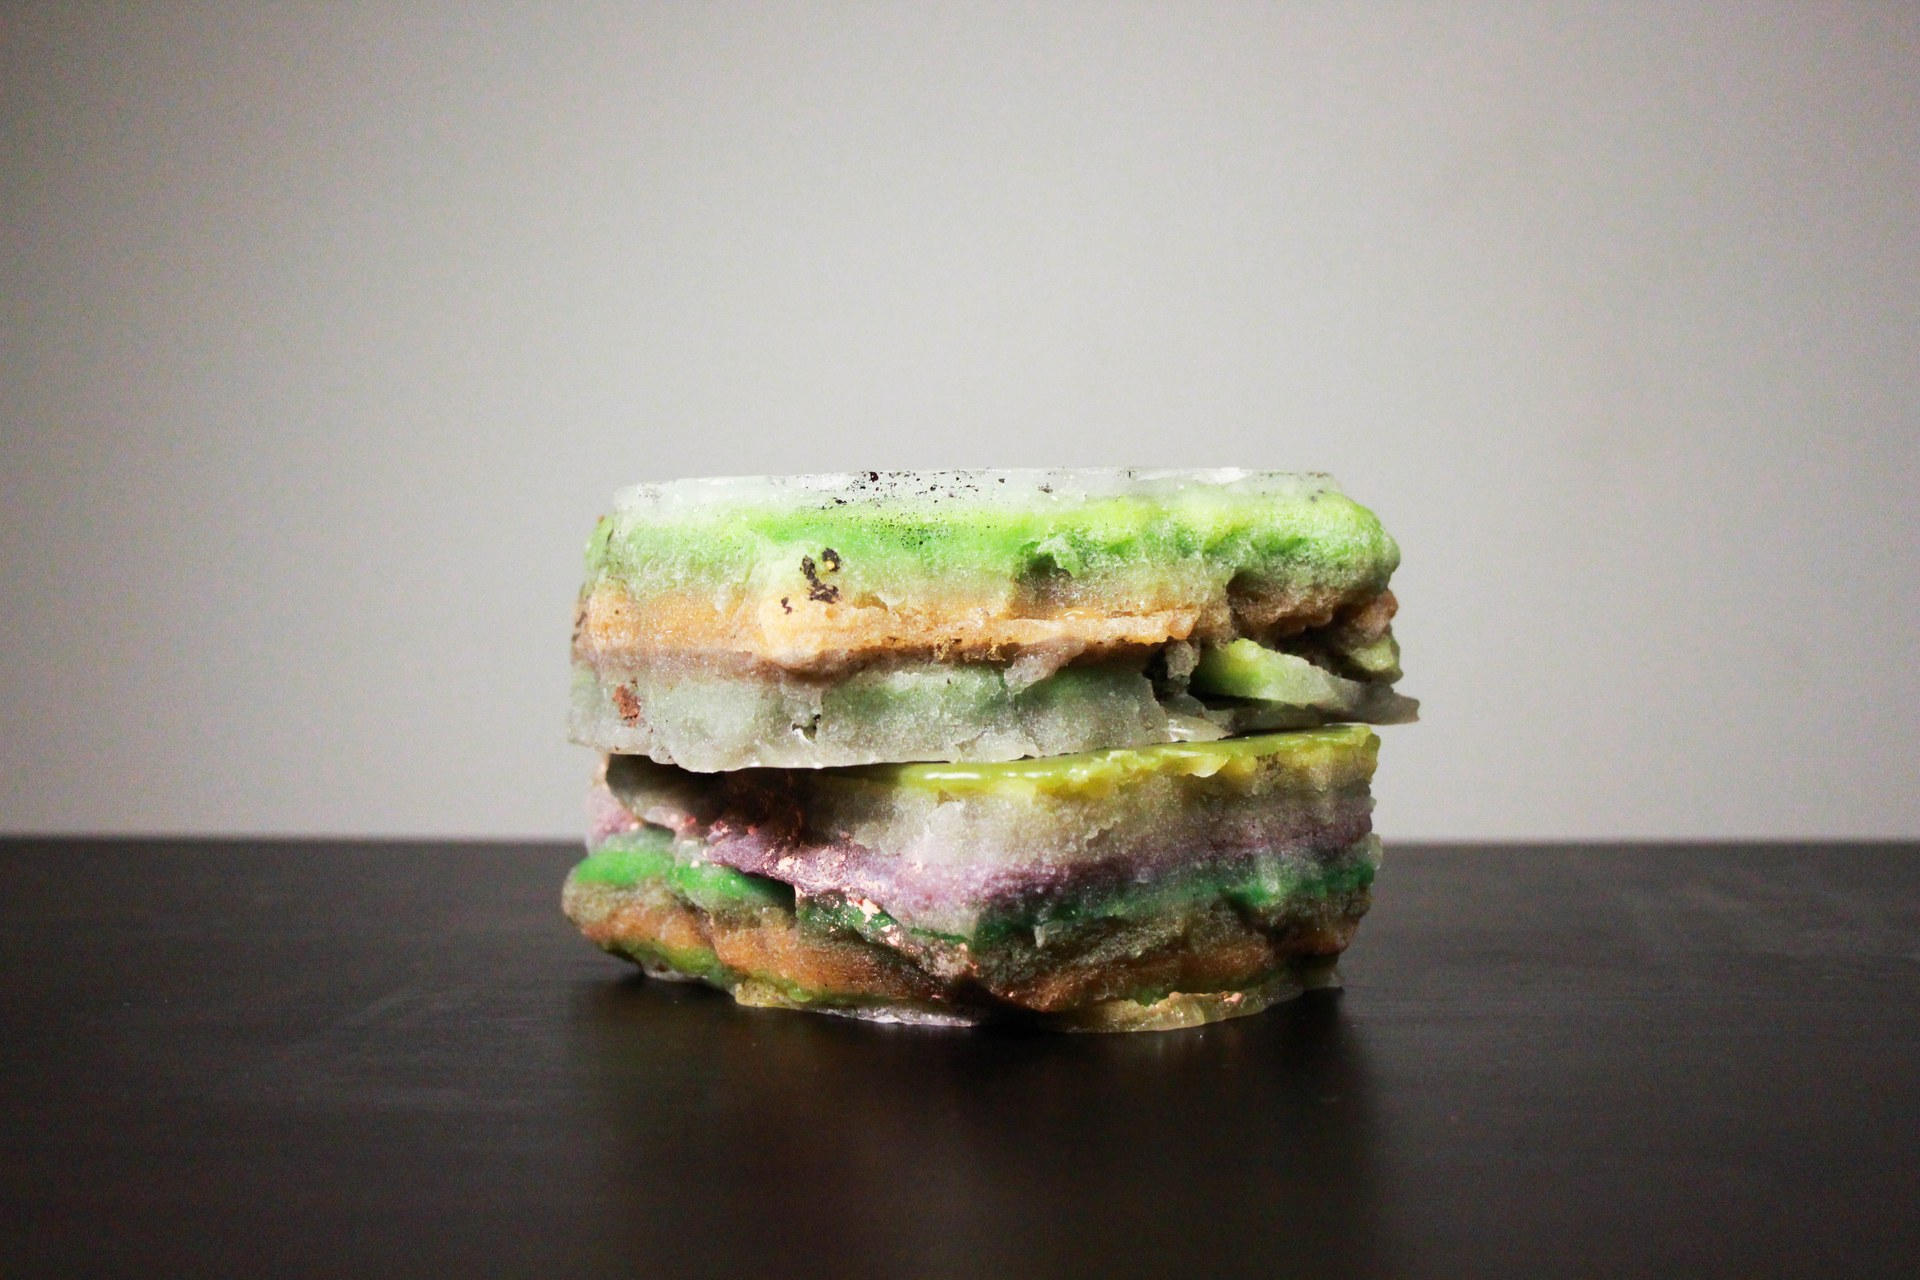 The Layered Rock-Making Outcome (Documentation), art object, 90x170x140 mm, paraffin, crayon, acrylic paint, 2021